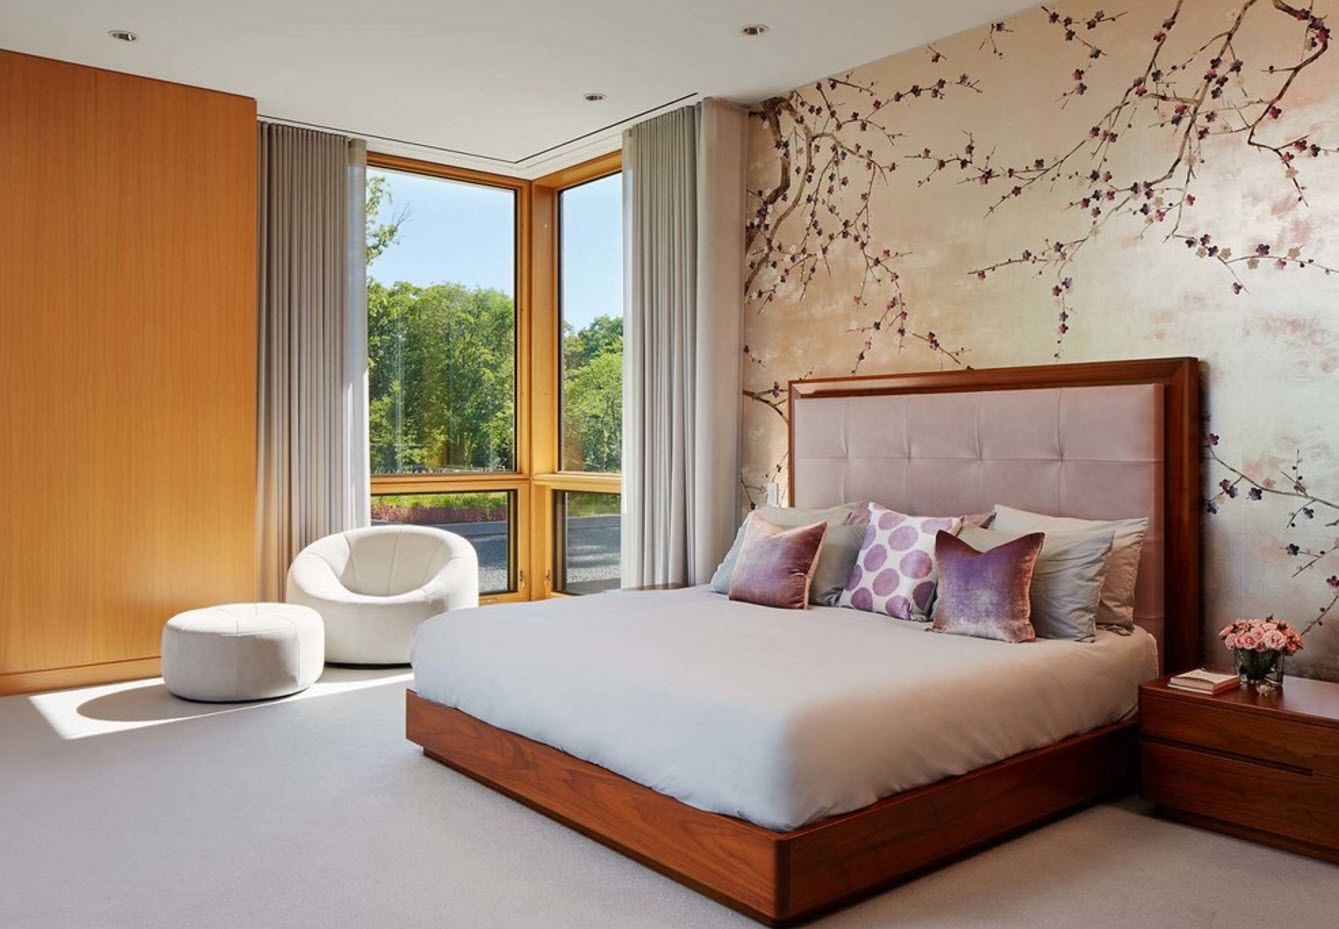 Spring theme of the headboard wallpaper